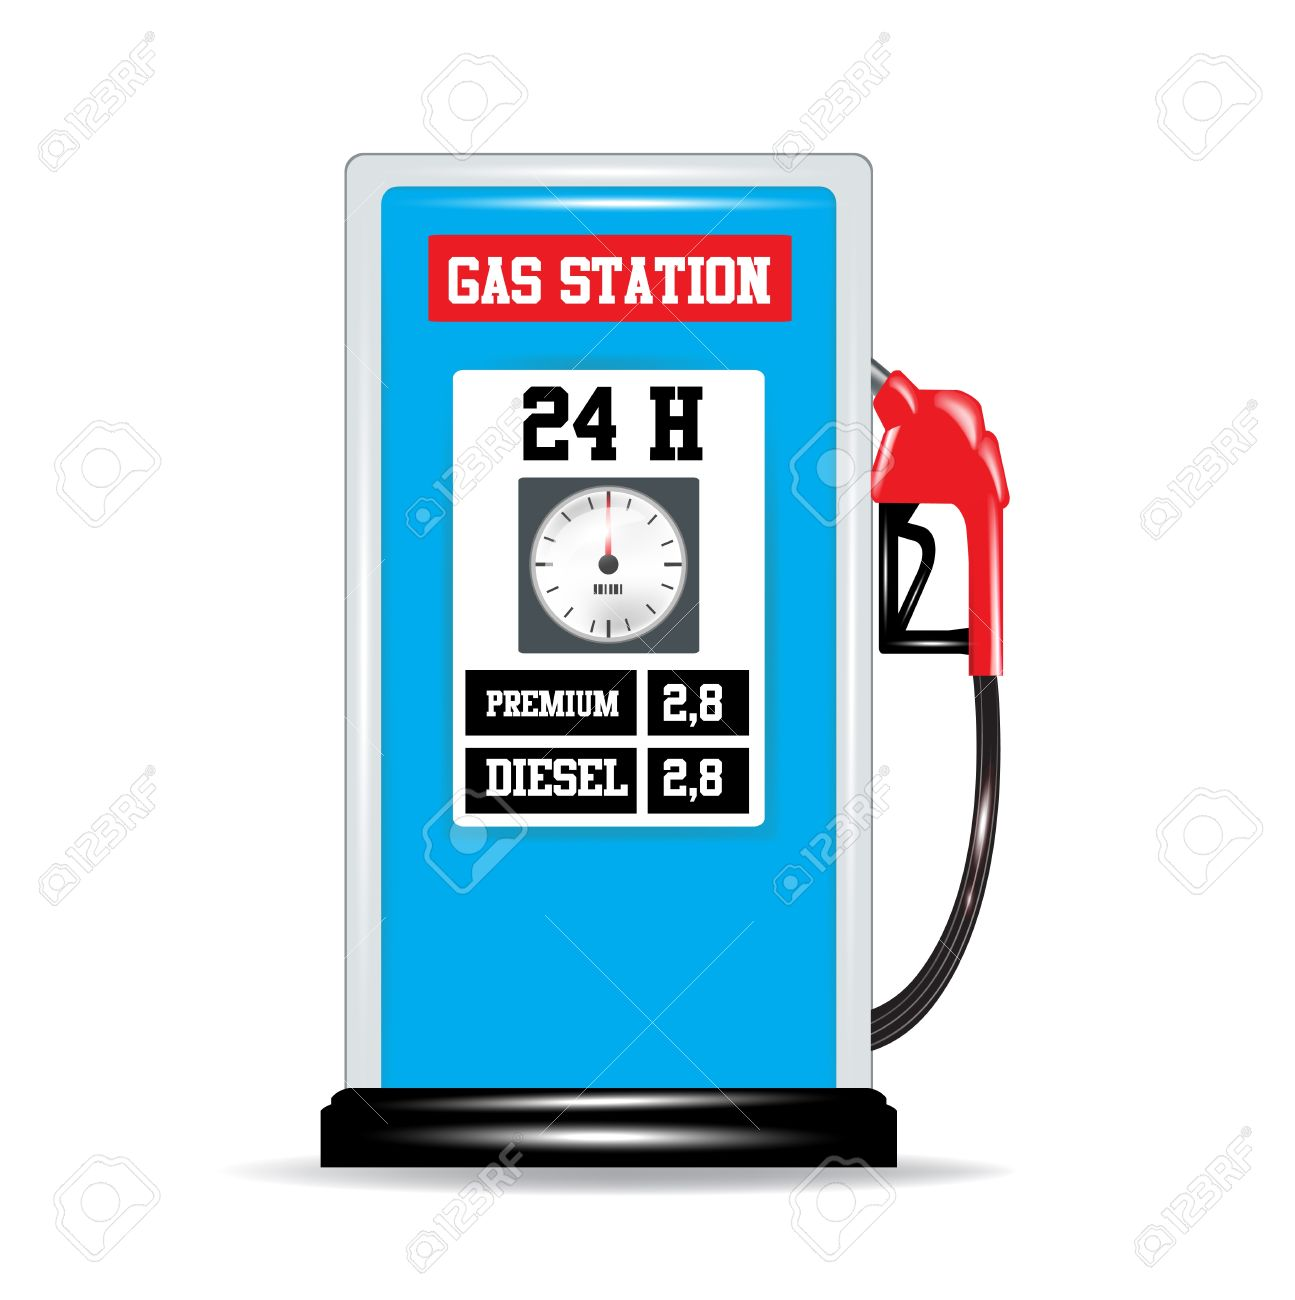 Gas Pump Nozzle And Gas Station Isolated Royalty Free Cliparts.